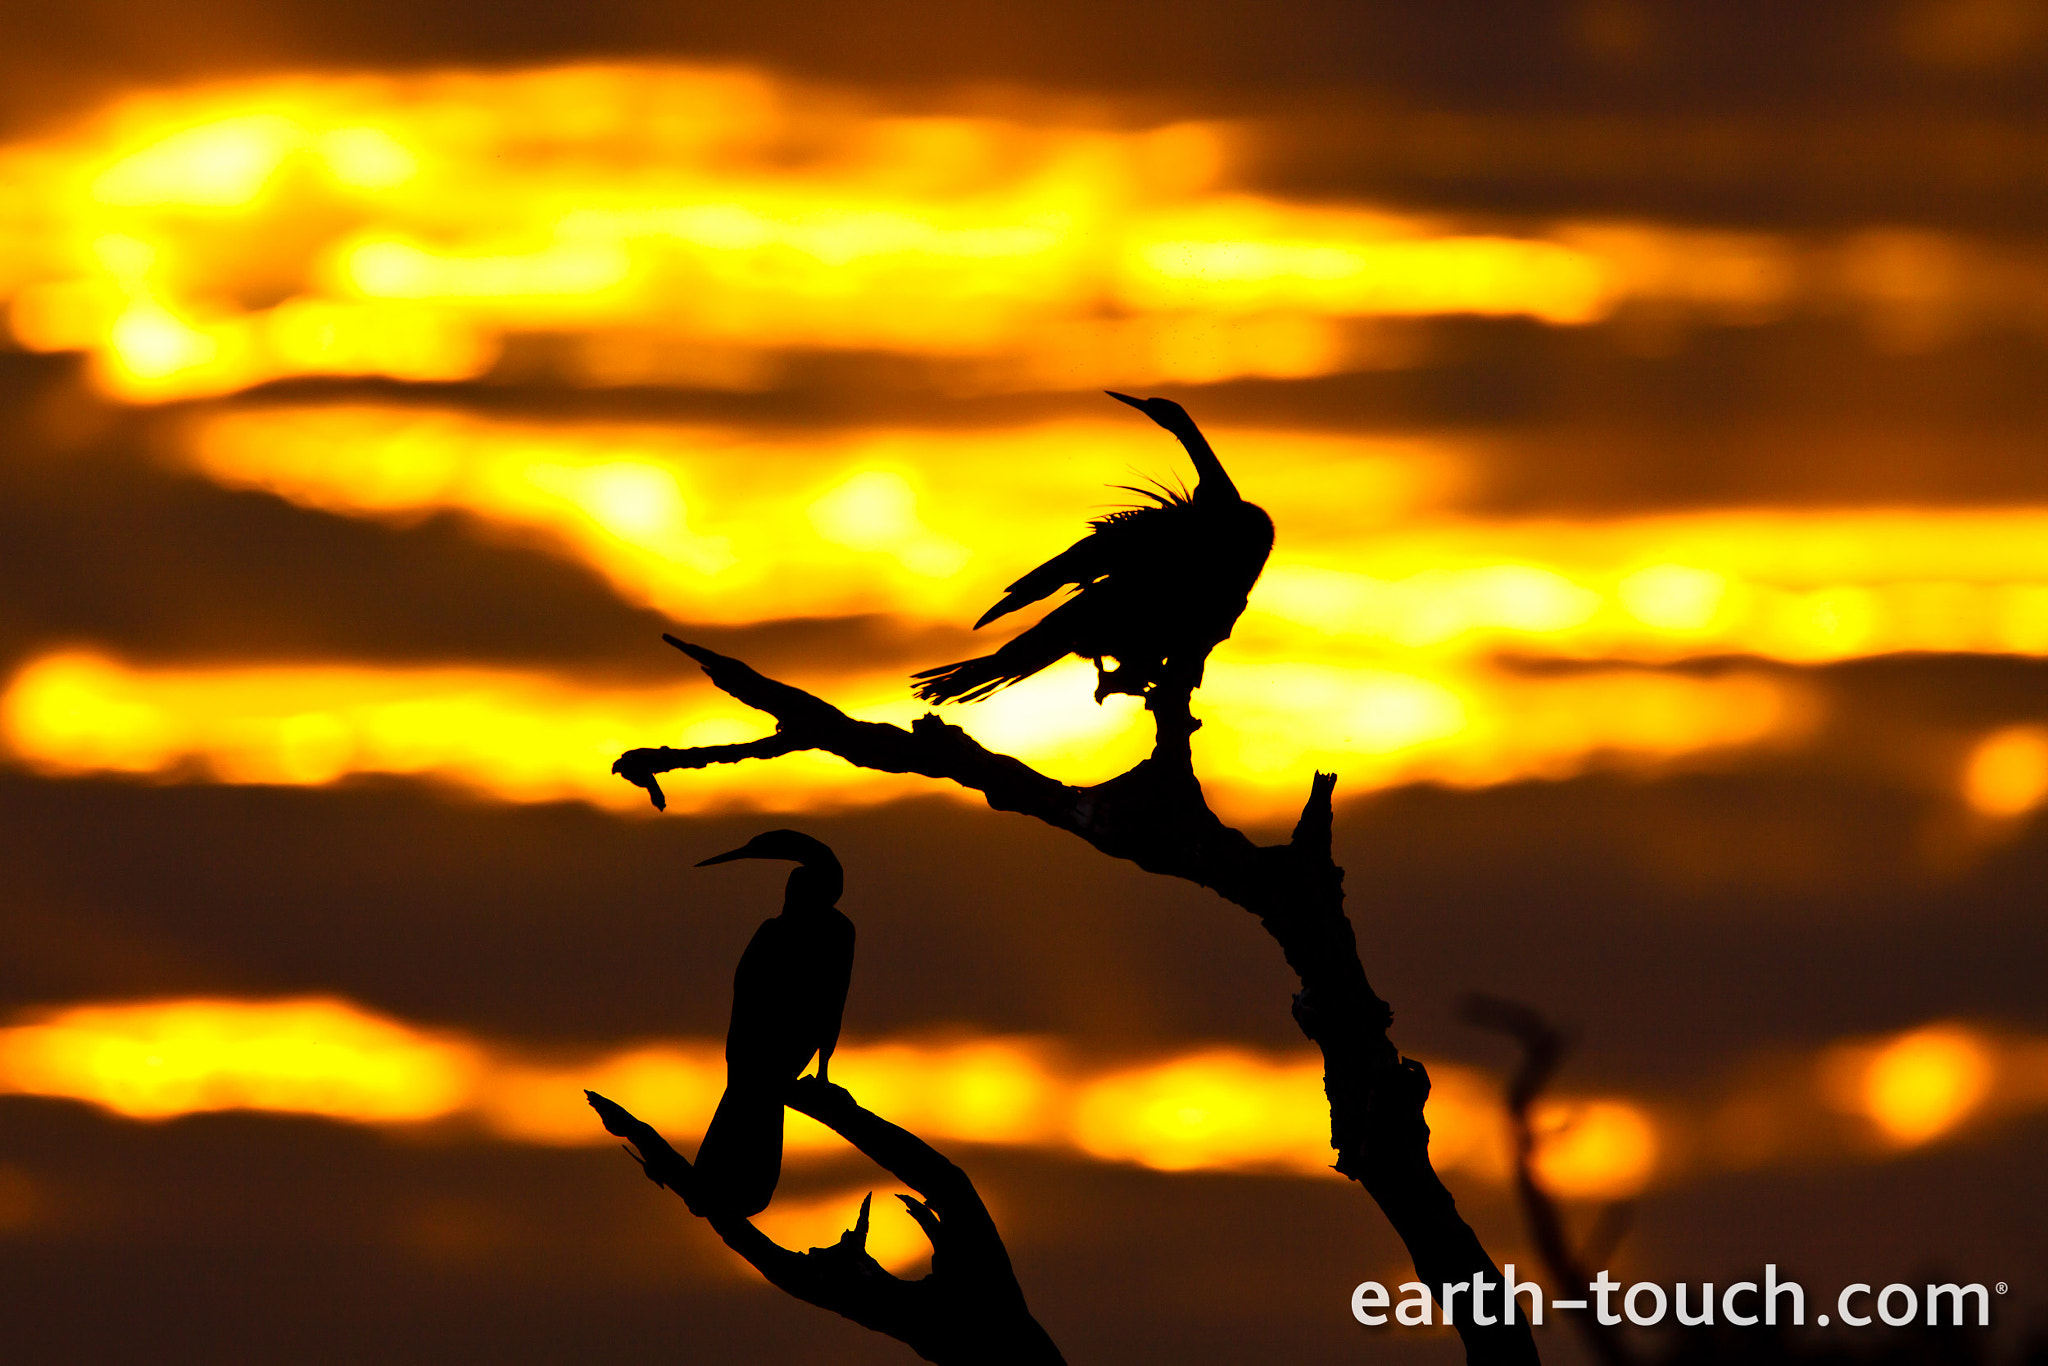 Photograph Sunset silhouette by Earth Touch on 500px